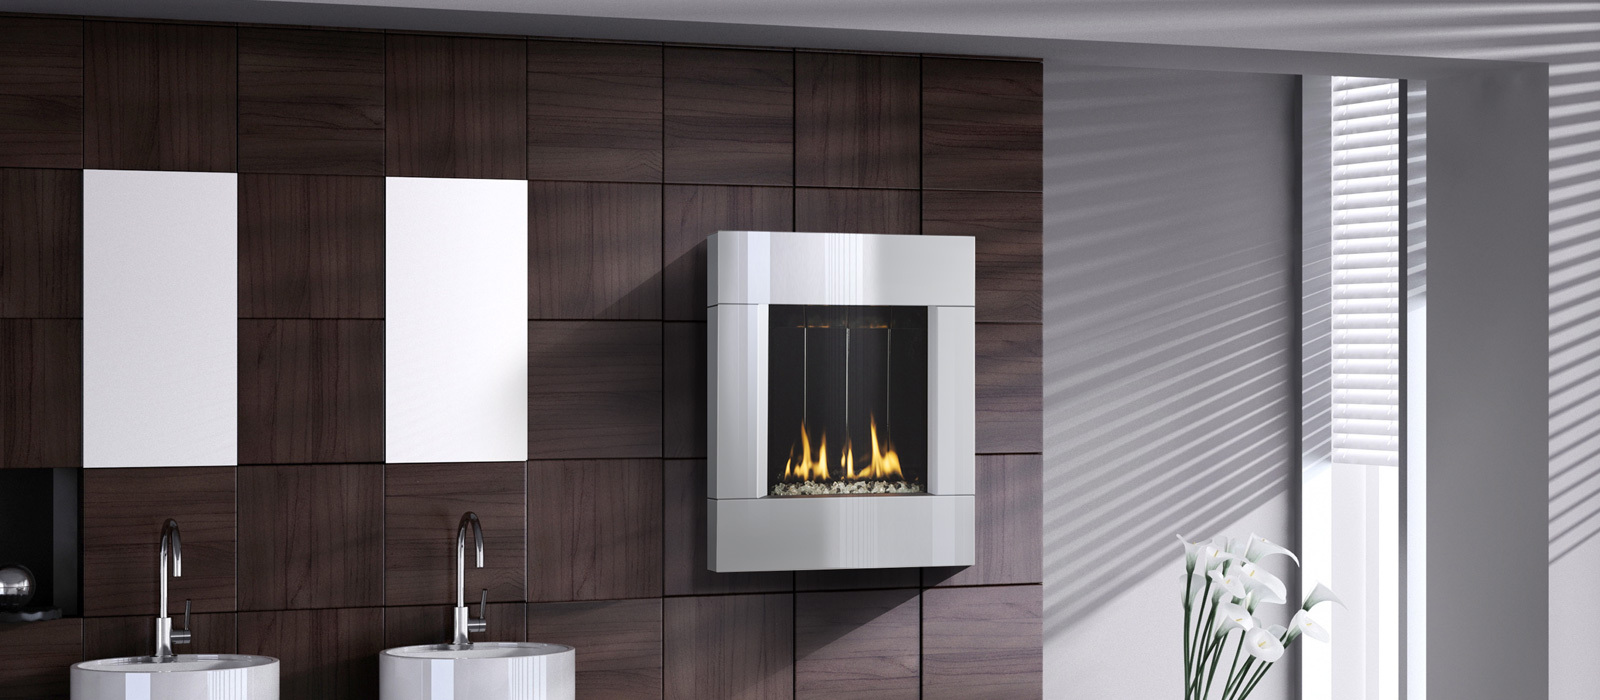 ultramodern modern fireplace inserts insert contemporary gas wonderful